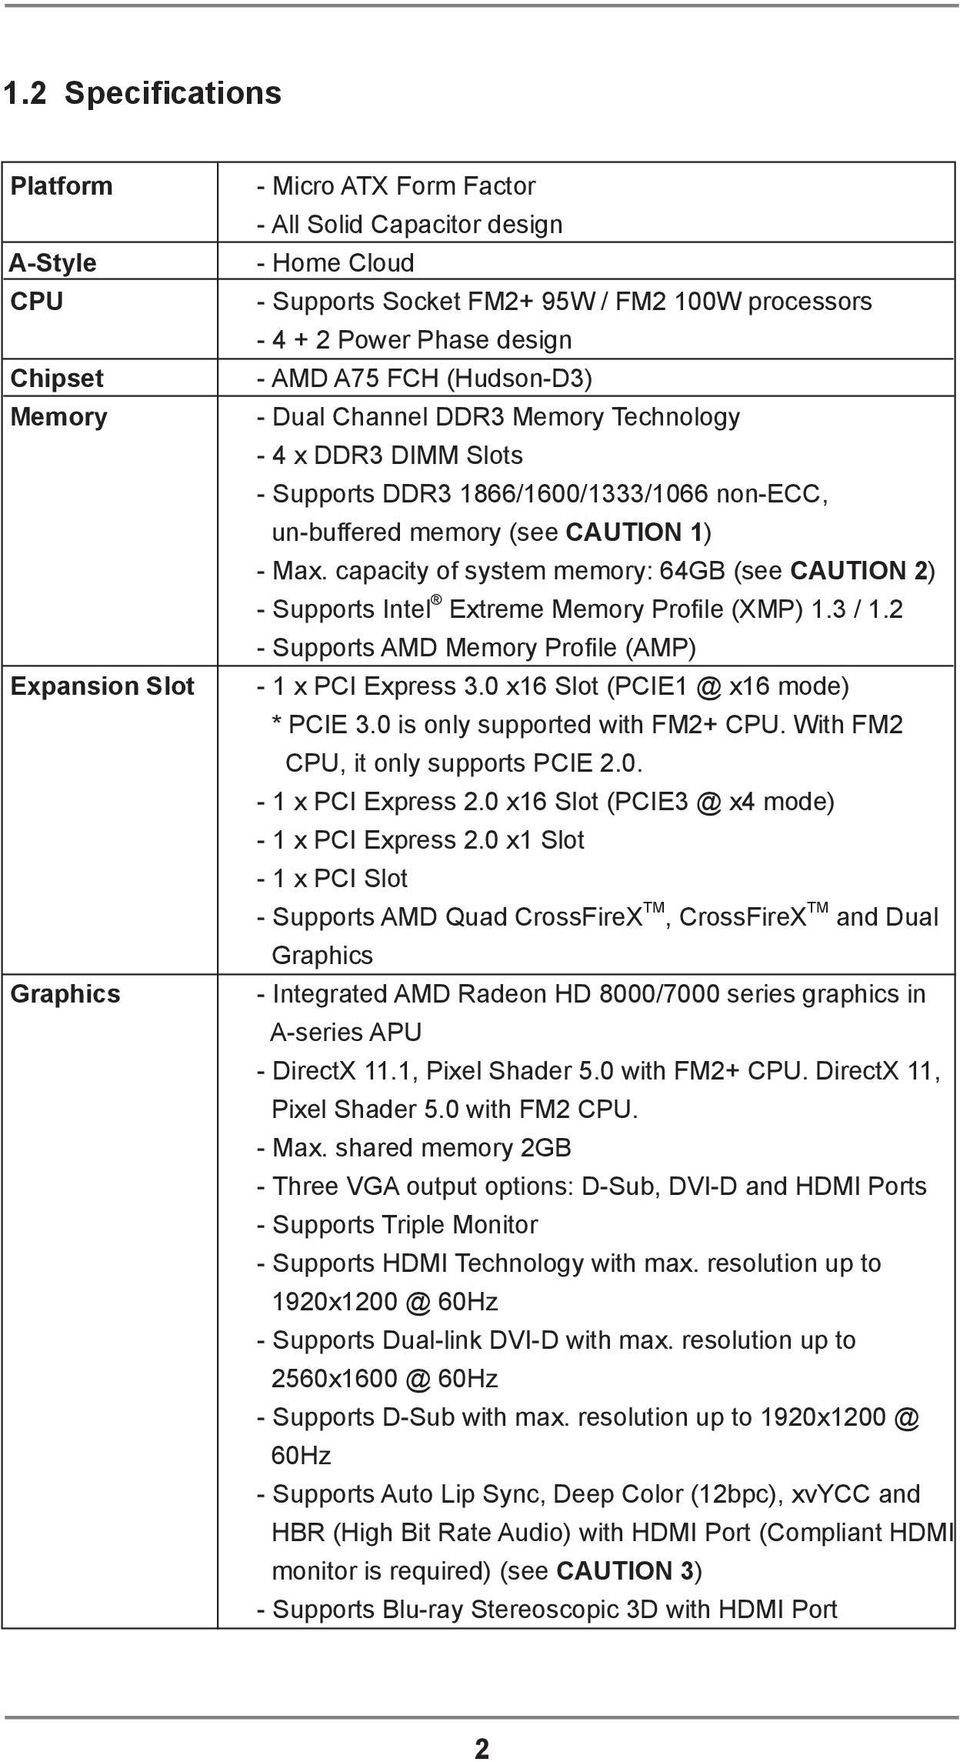 capacity of system memory: 64GB (see CAUTION 2) - Supports Intel Extreme Memory Proile (XMP) 1.3 / 1.2 - Supports AMD Memory Proile (AMP) - 1 x PCI Express 3.0 x16 Slot (PCIE1 @ x16 mode) * PCIE 3.